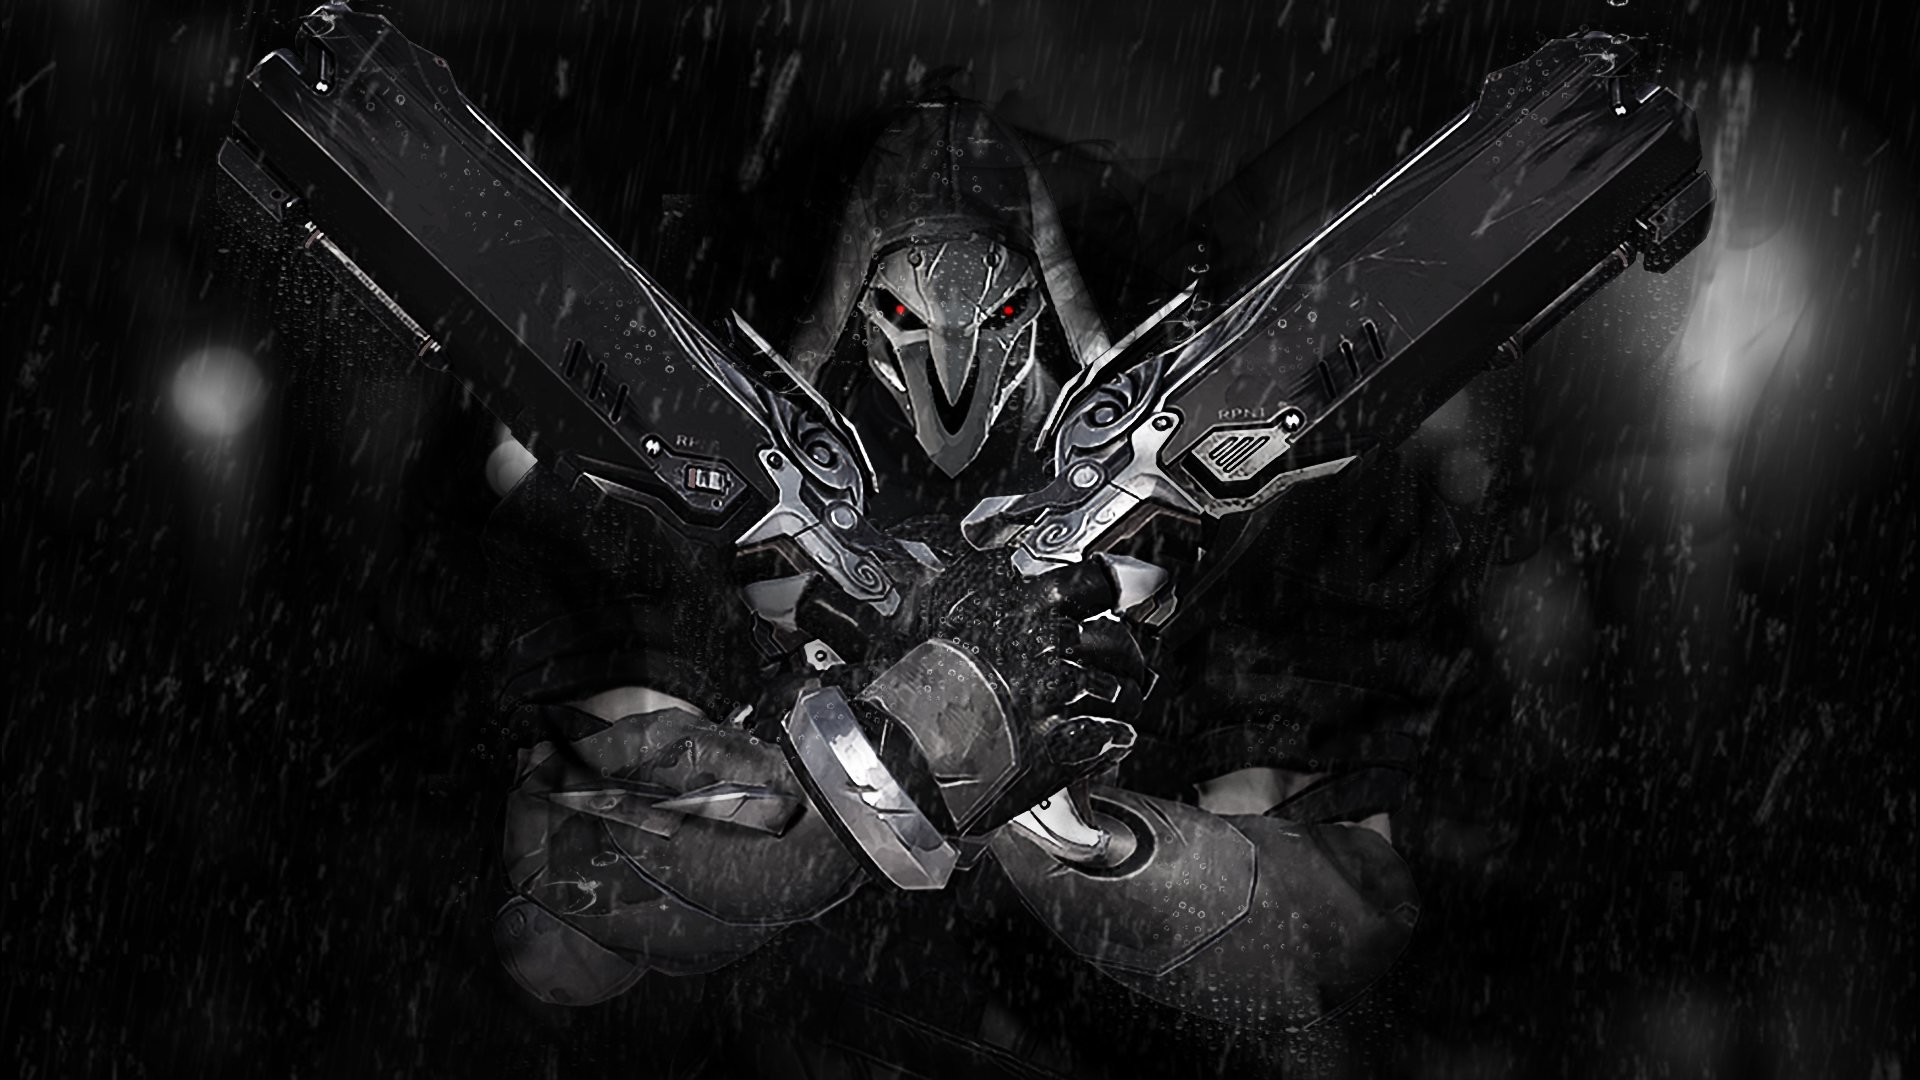 Iphone 5s Wallpaper Anime Overwatch Reaper Wallpapers 83 Images